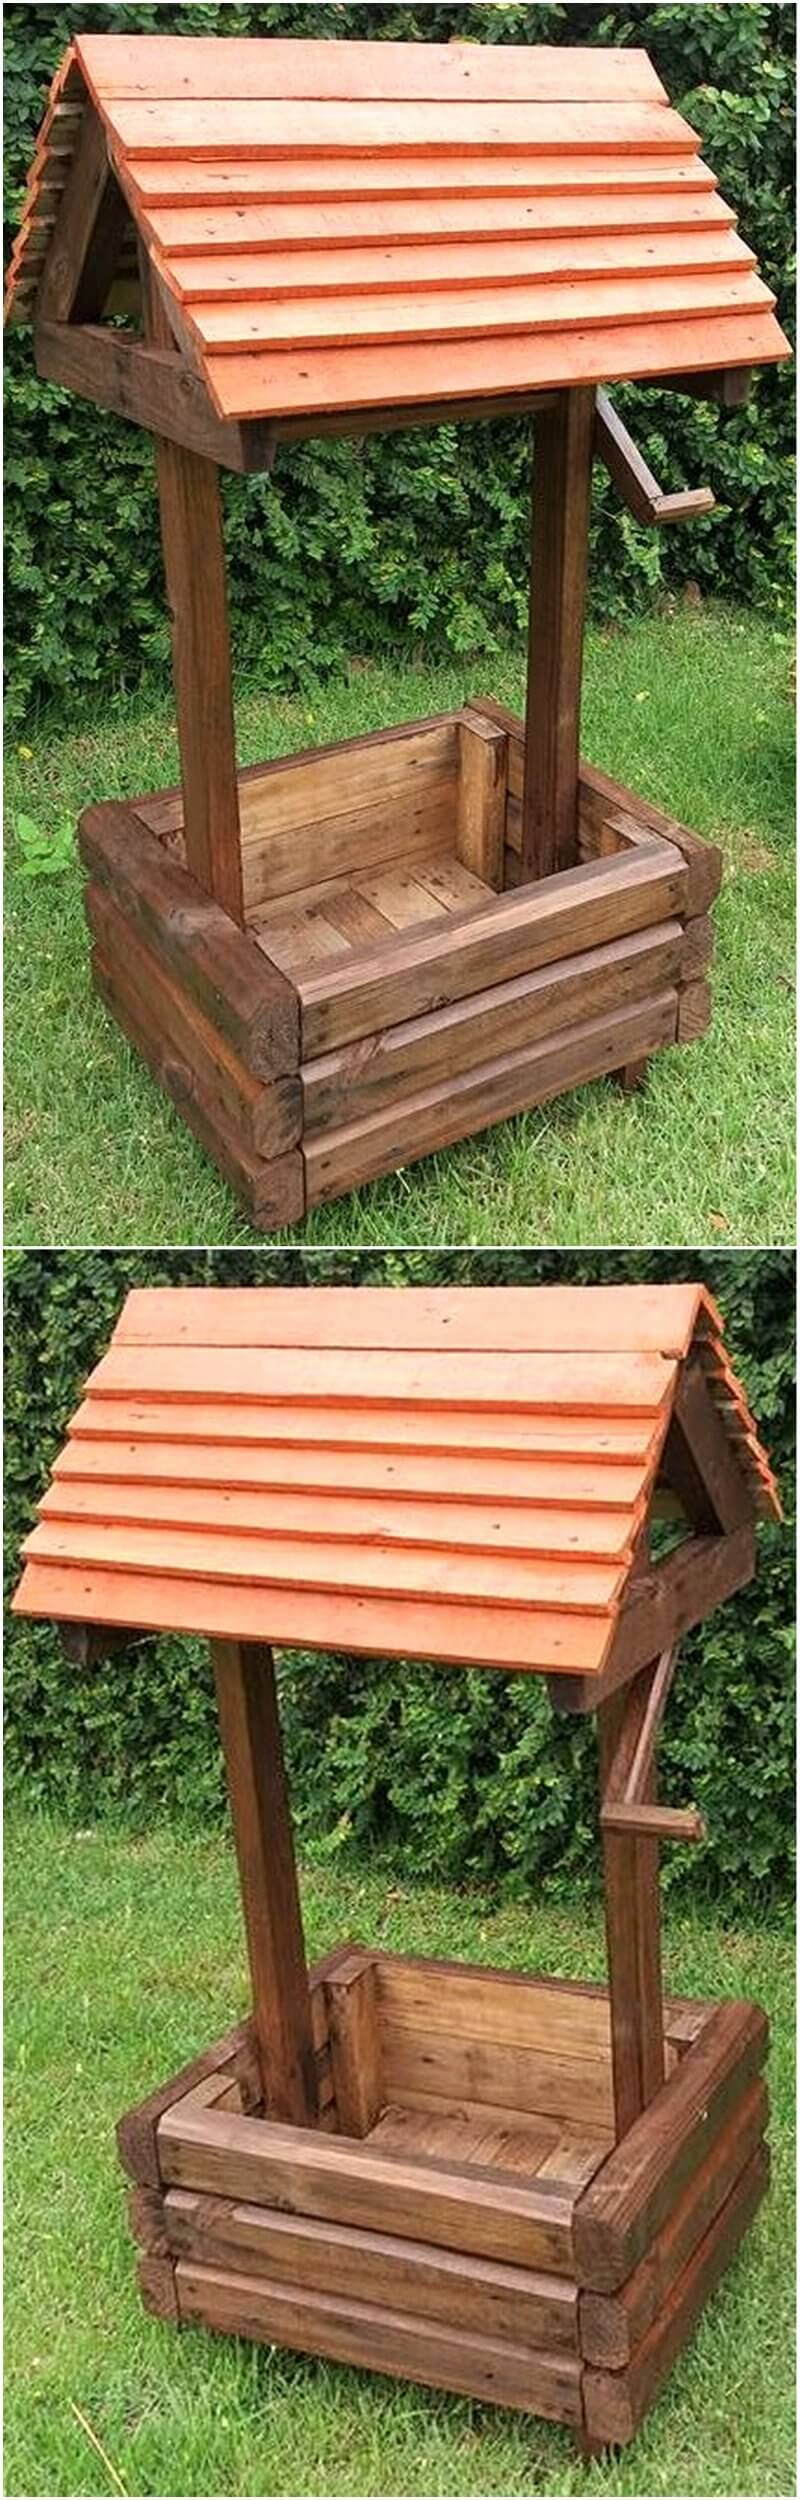 pallets garden decor wishing well